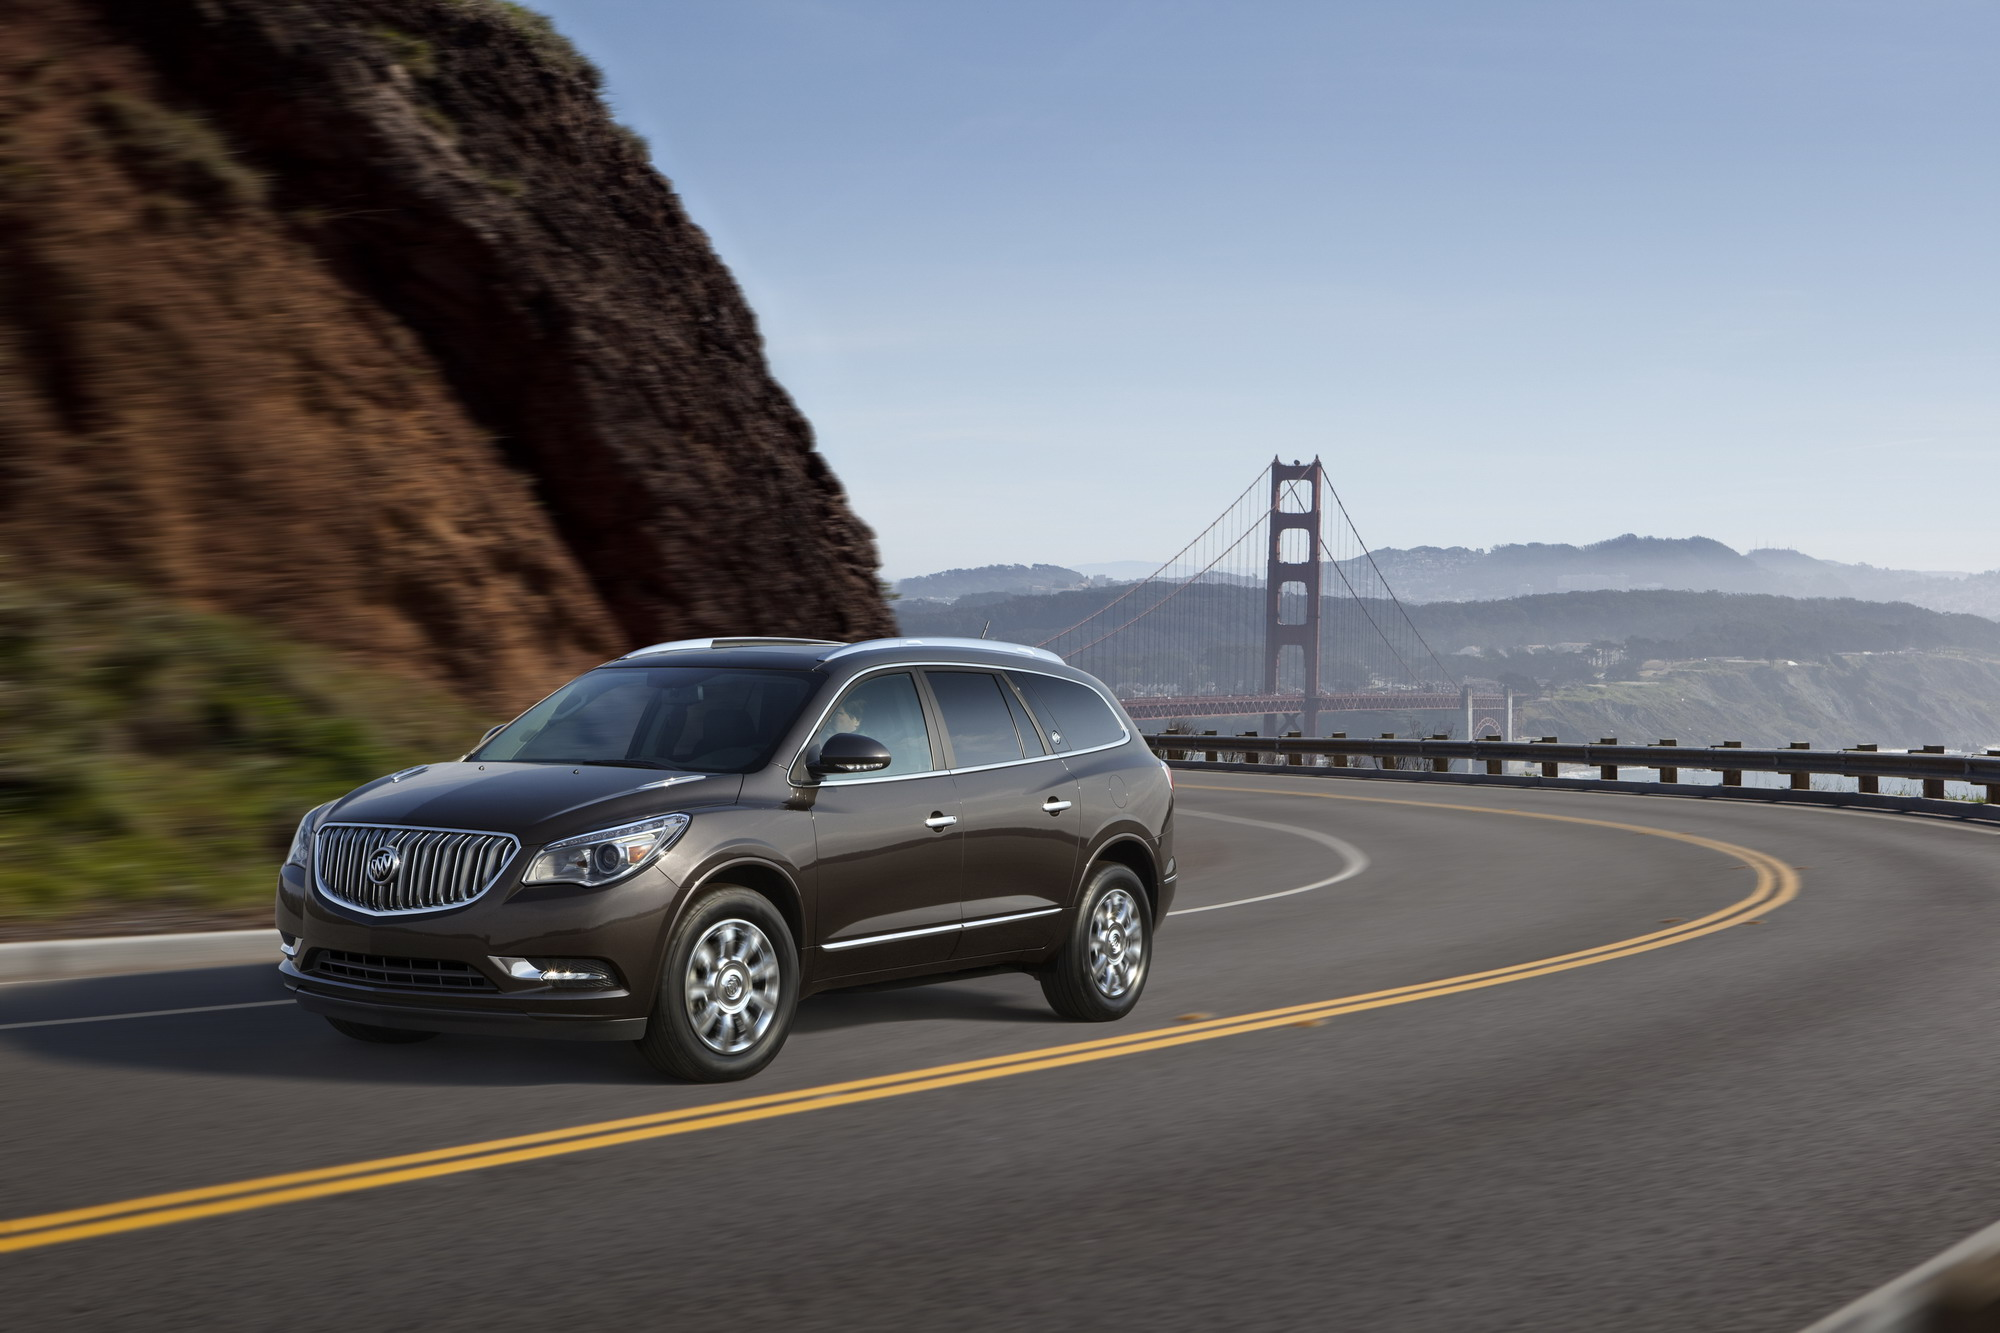 2013 Buick Enclave   Top Speed